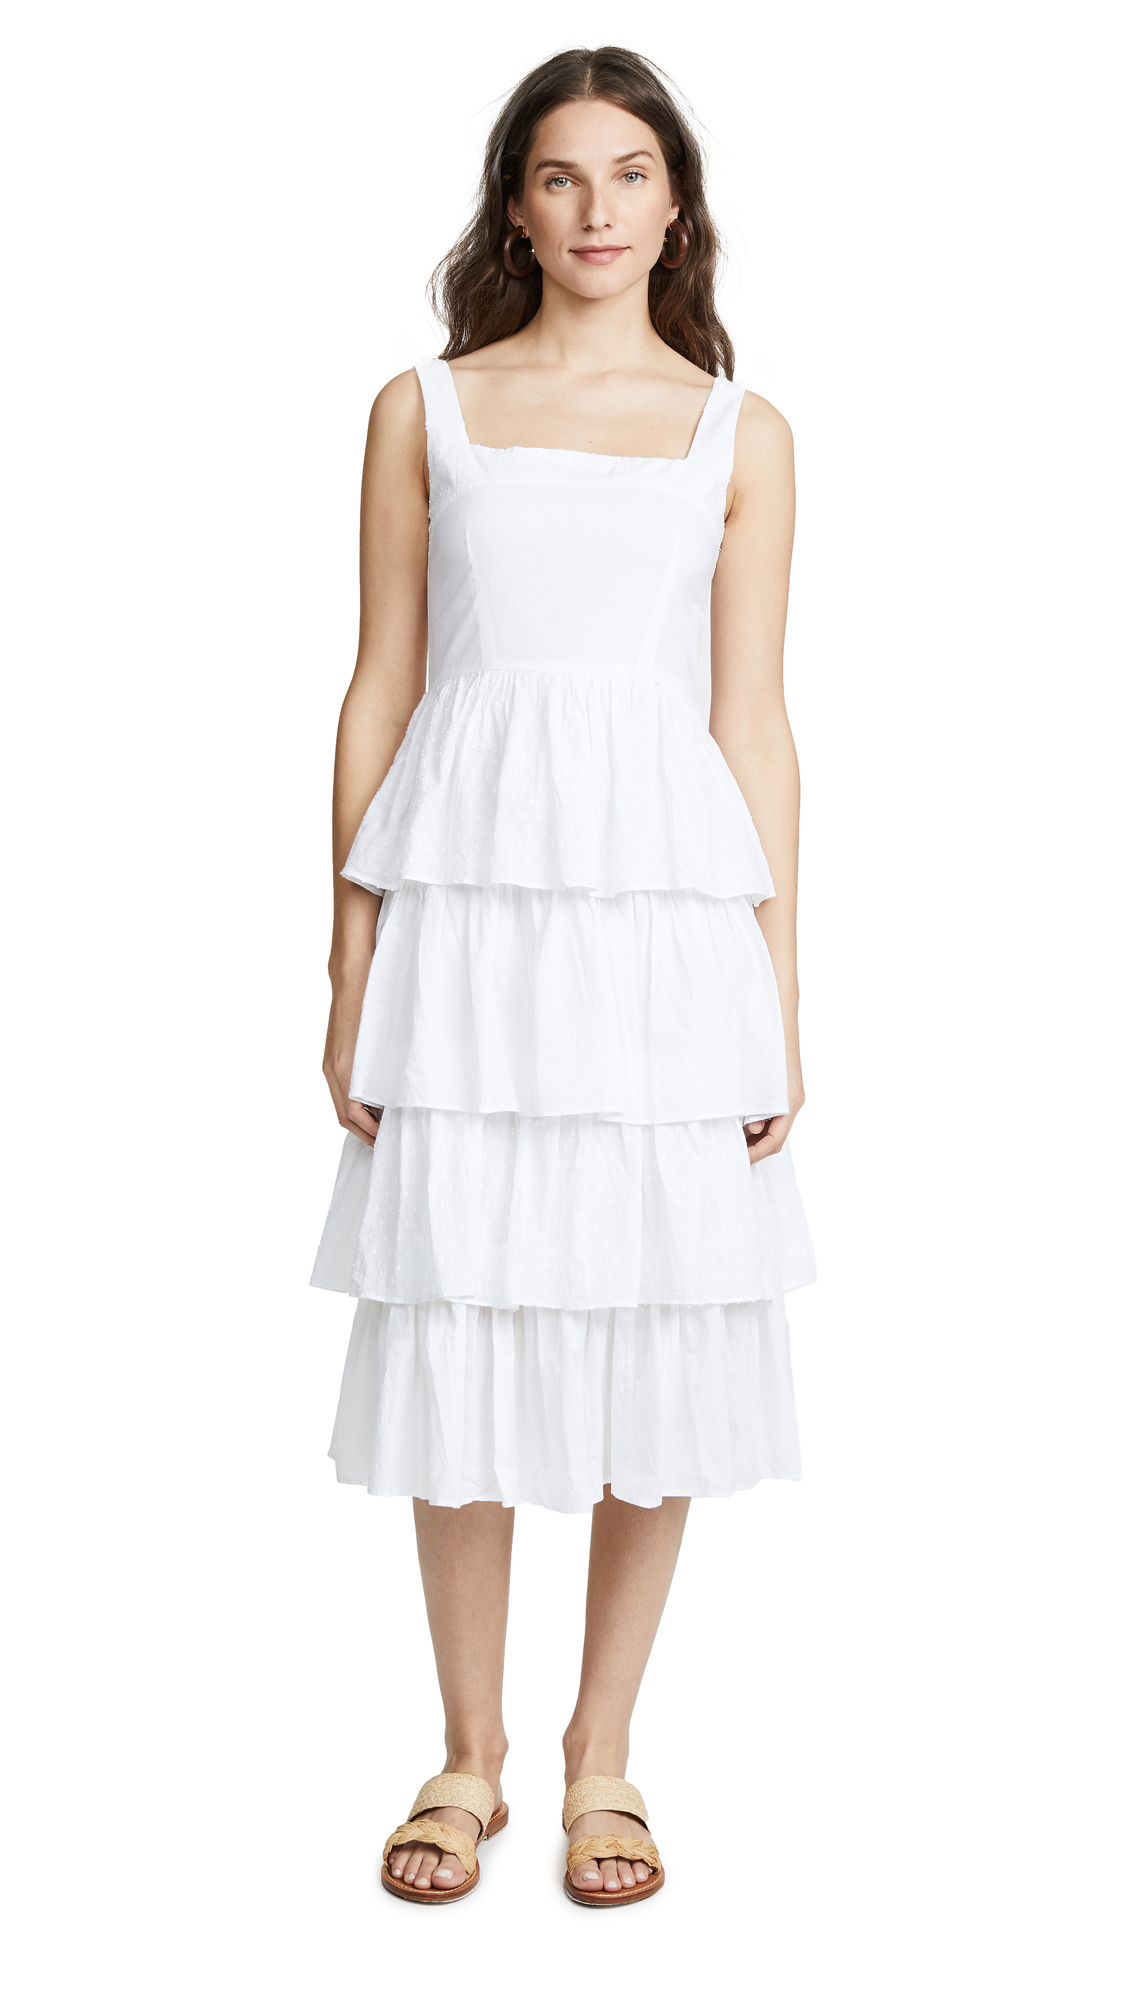 KOS RESORT TIERED DRESS